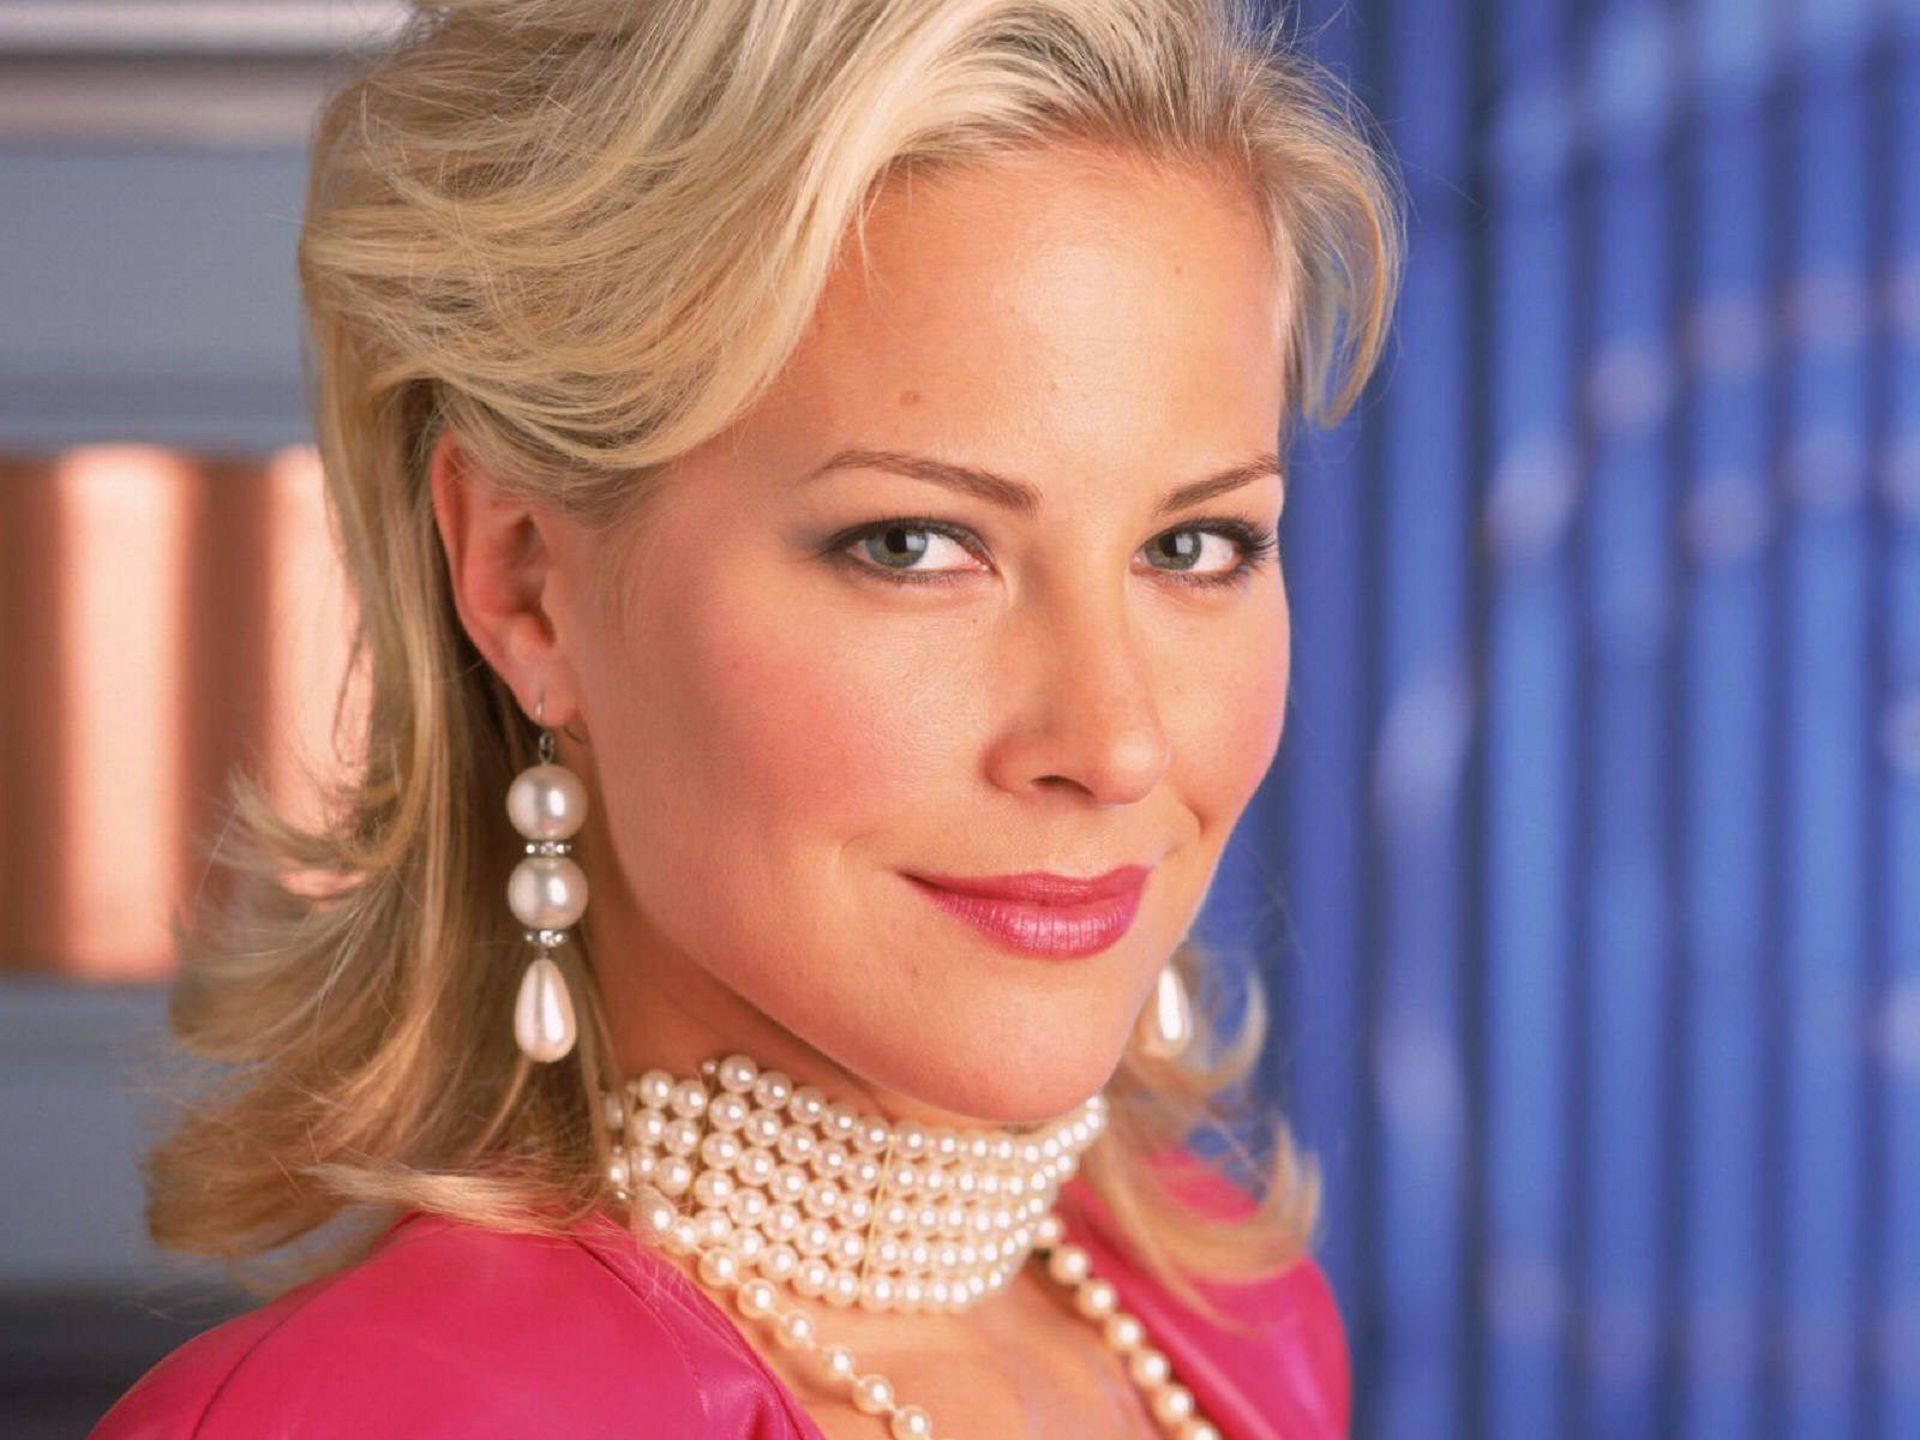 Brittany Daniel Wallpaper For Laptop